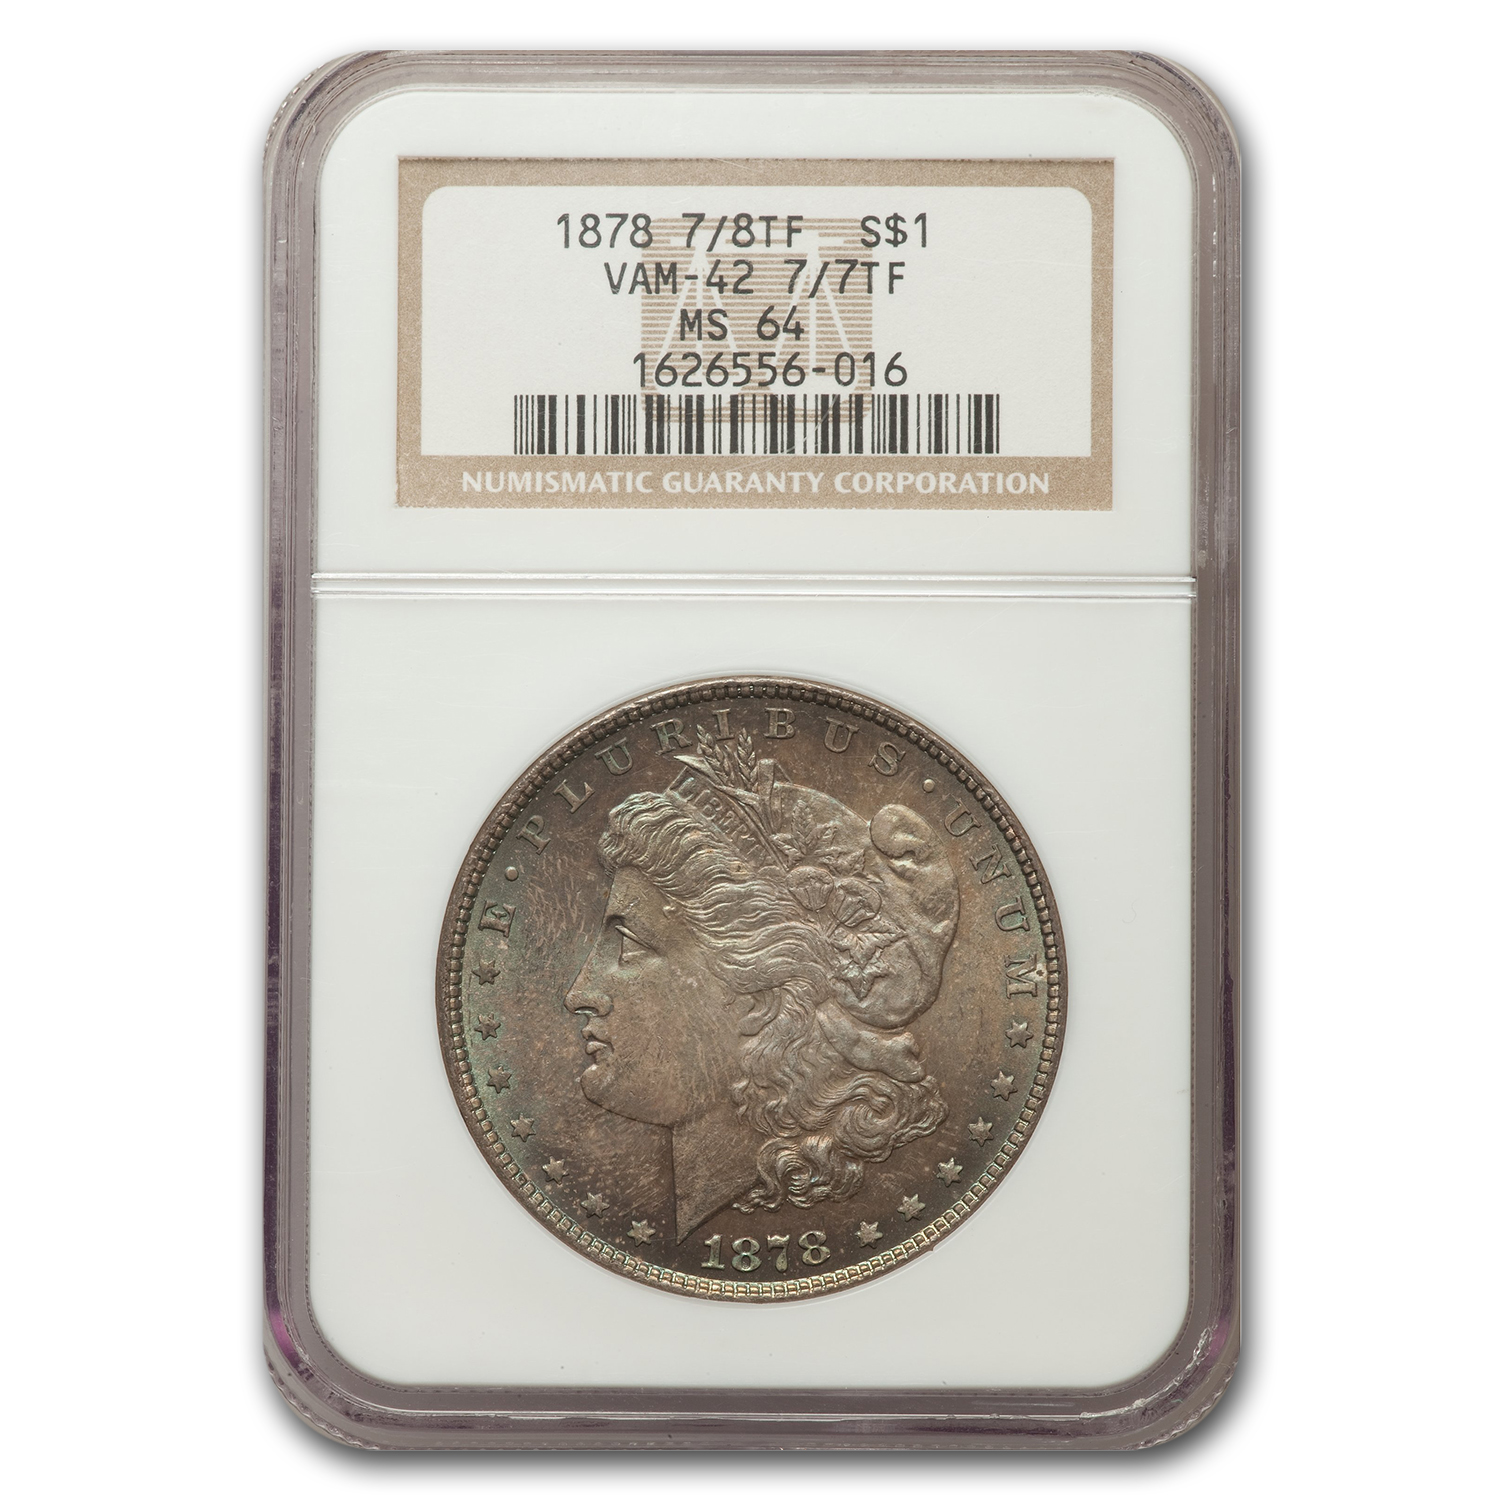 1878 S$1 Morgan Dollar MS-64 0 NGC